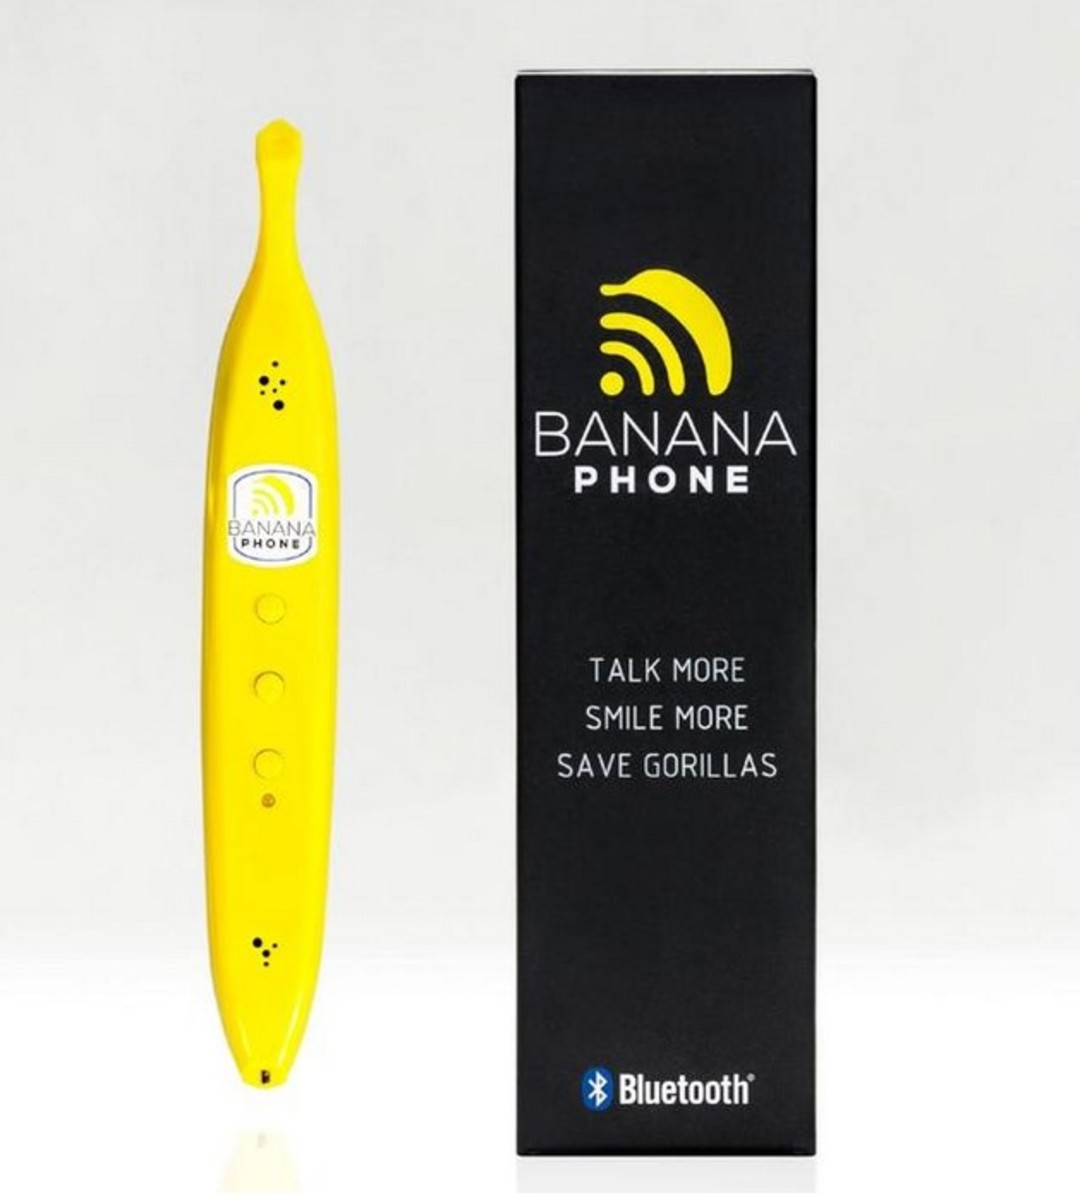 Make All Your Calls With The Banana Phone